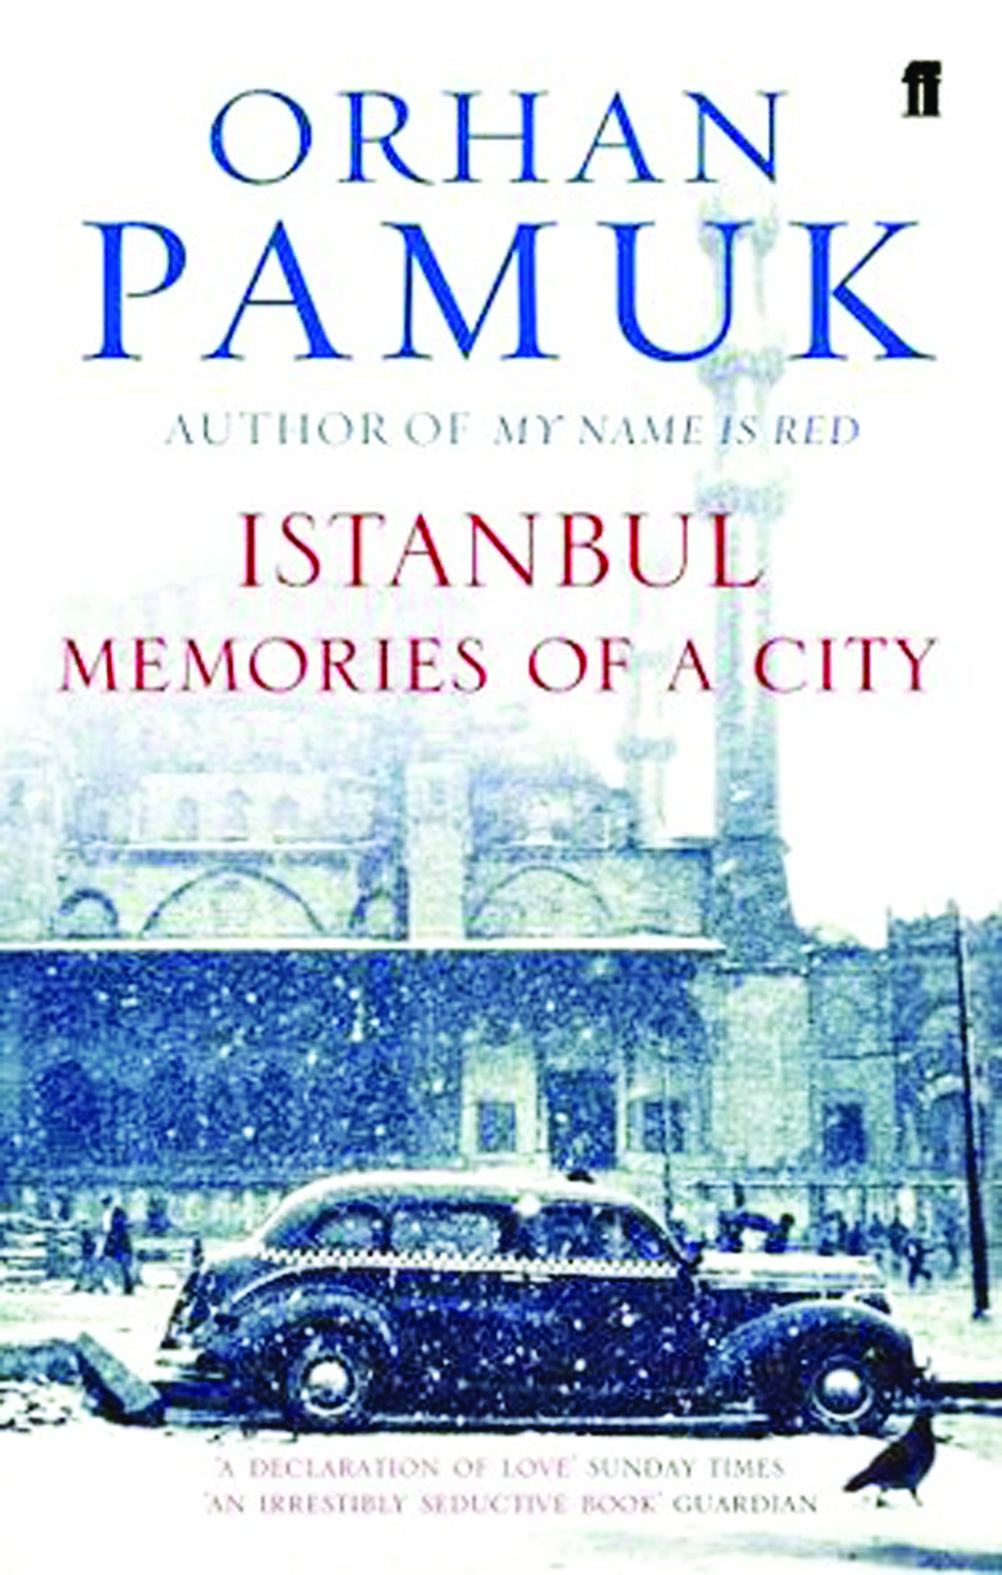 Istanbul: Memories and the City (İstanbul: Hatıralar ve Şehir) is a largely  autobiographical memoir by Orhan Pamuk that is deeply melancholic.